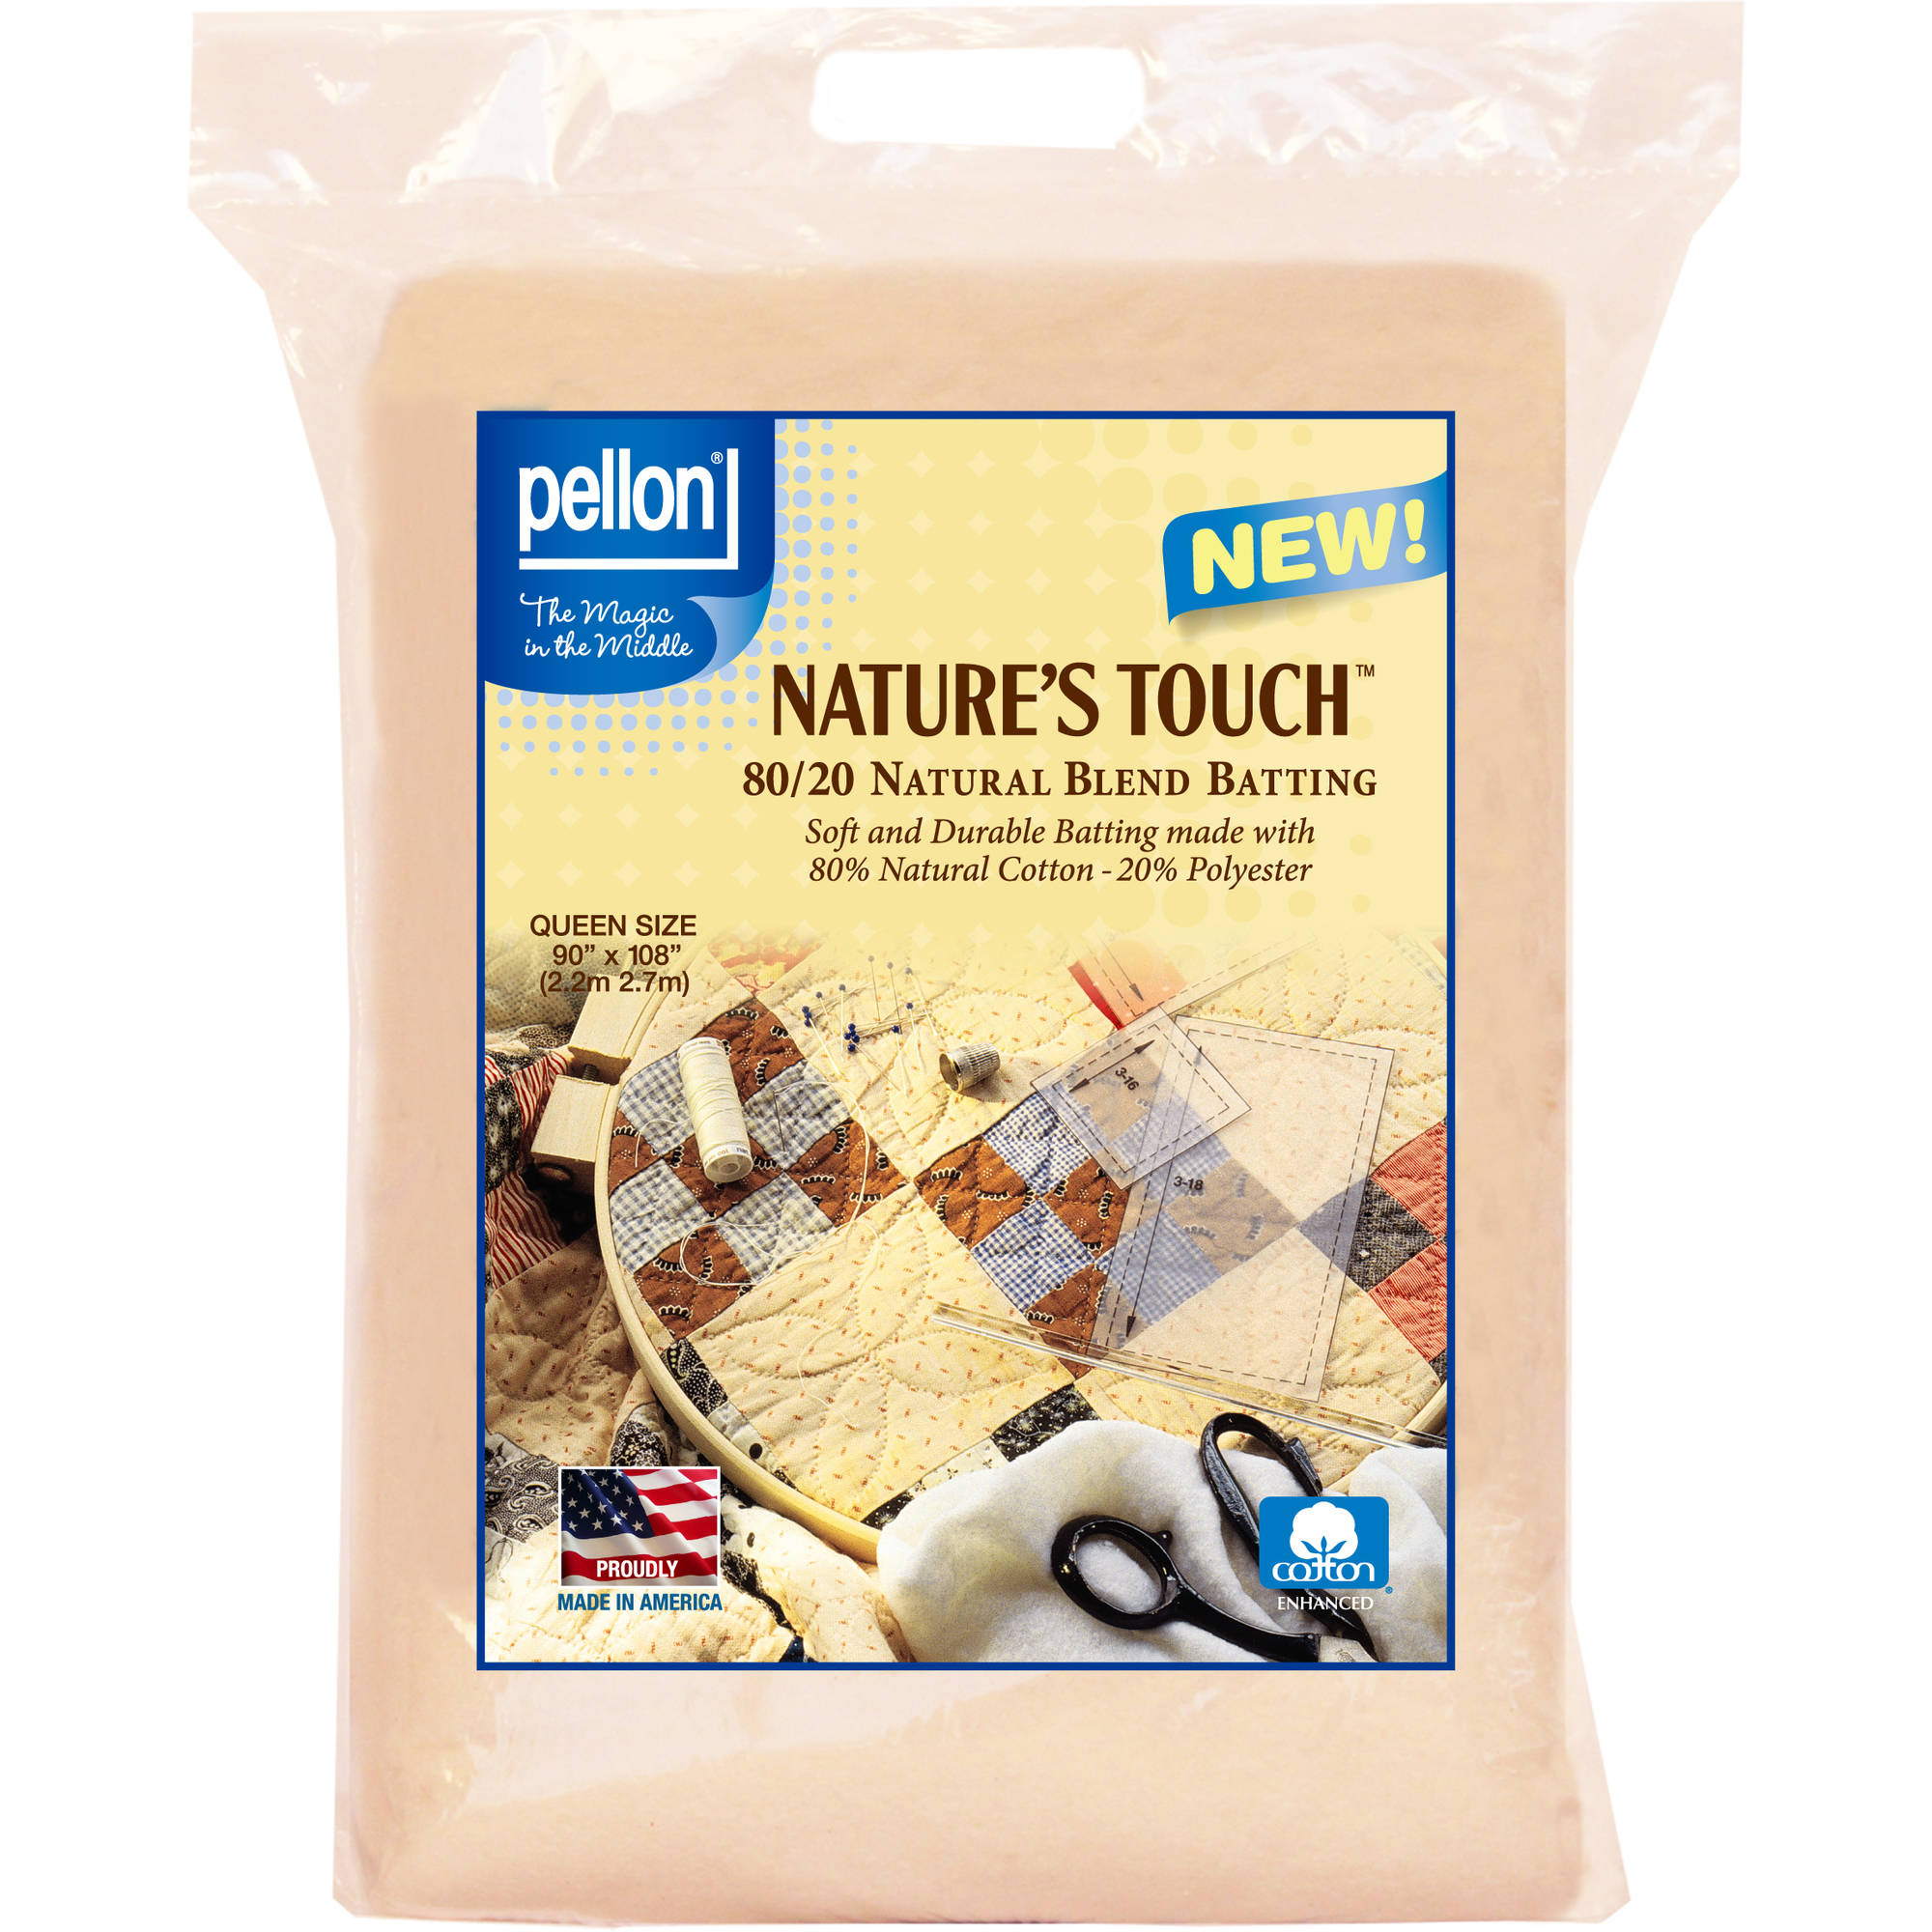 Pellon Nature's Touch Natural Blend 80/20 Packaged Batting, Queen Size